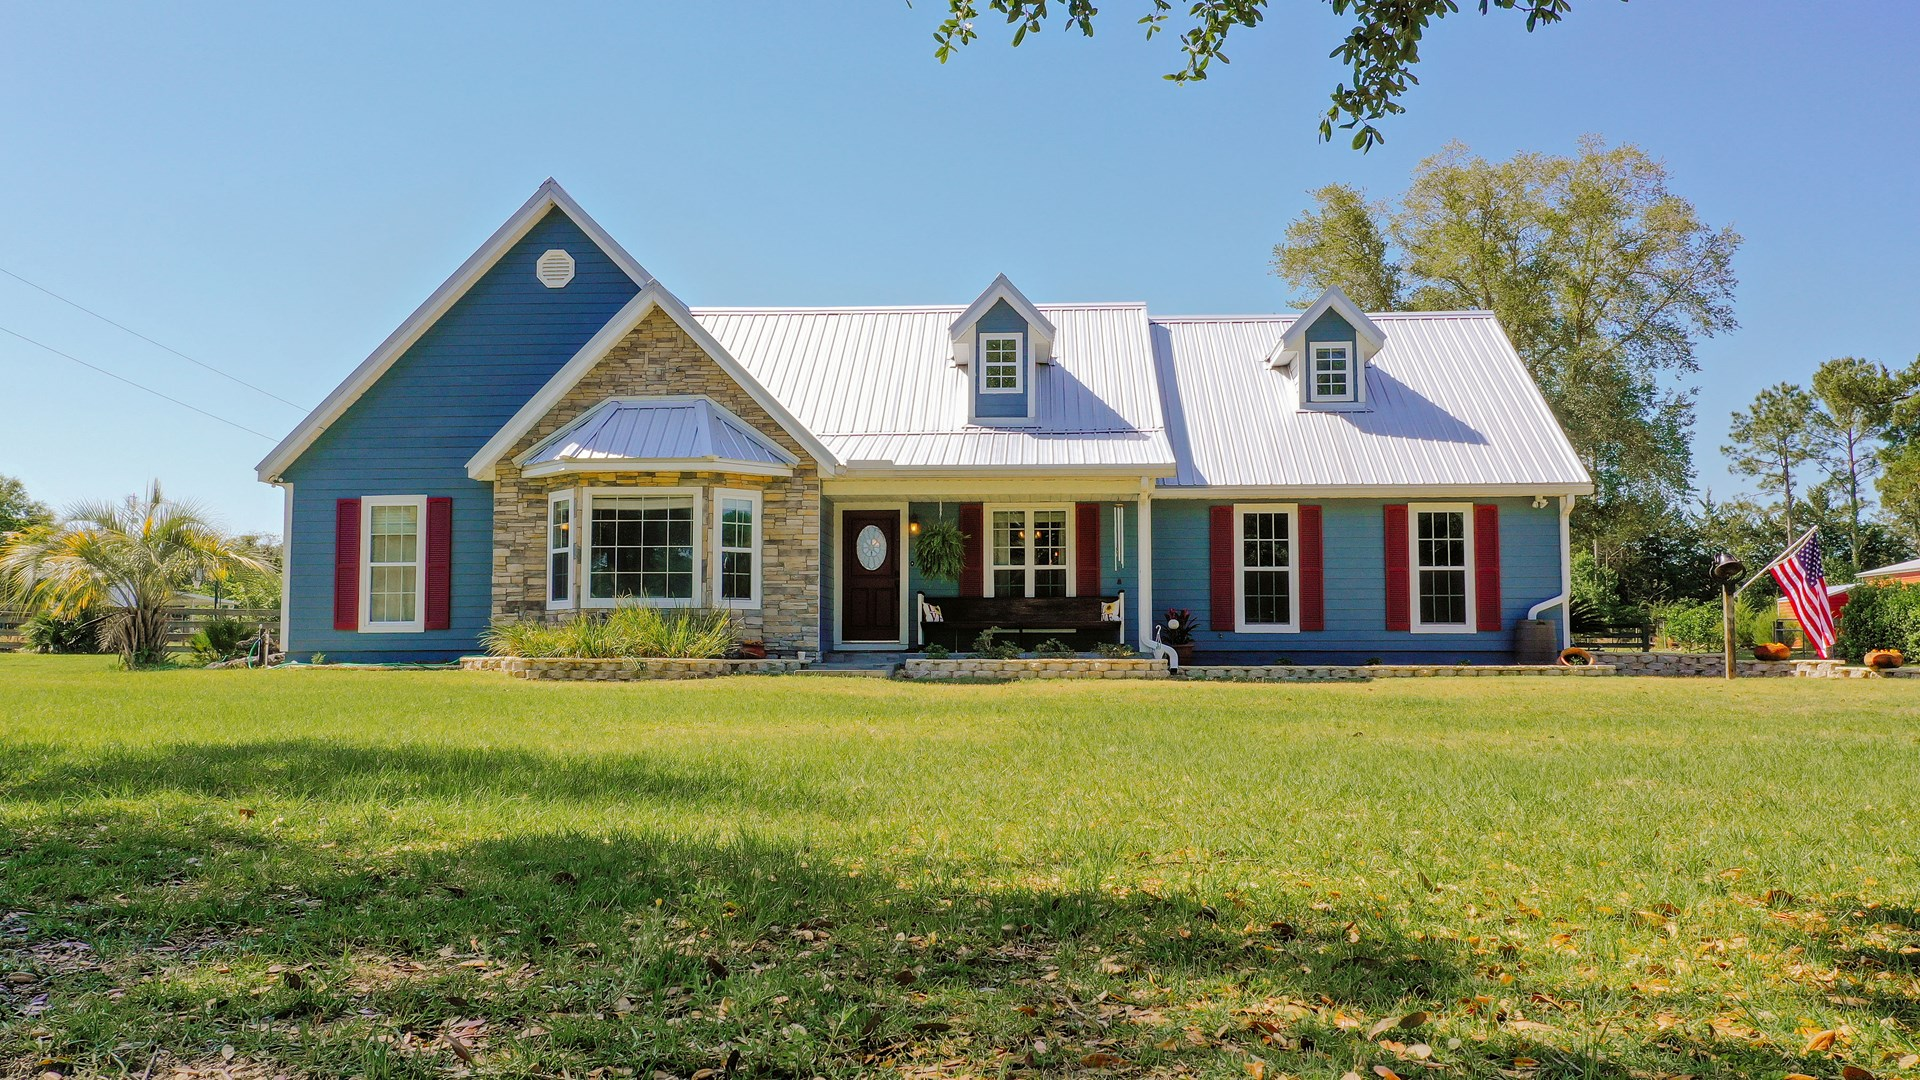 BEAUTIFUL TWO STORY COUNTRY STYLE HOME IN TRENTON FL!